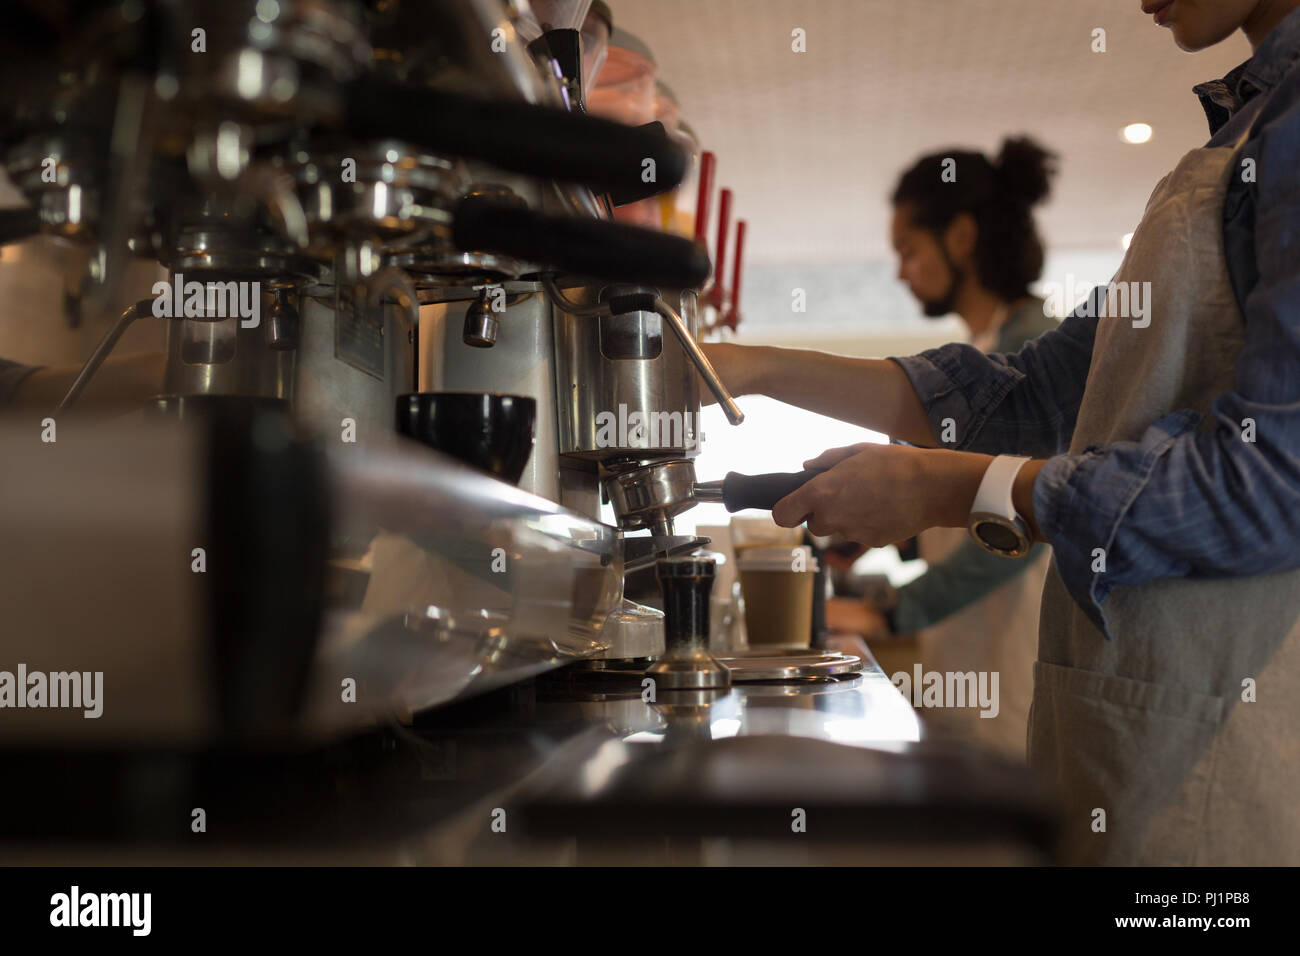 Waitress preparing coffee at coffee machine in cafe - Stock Image